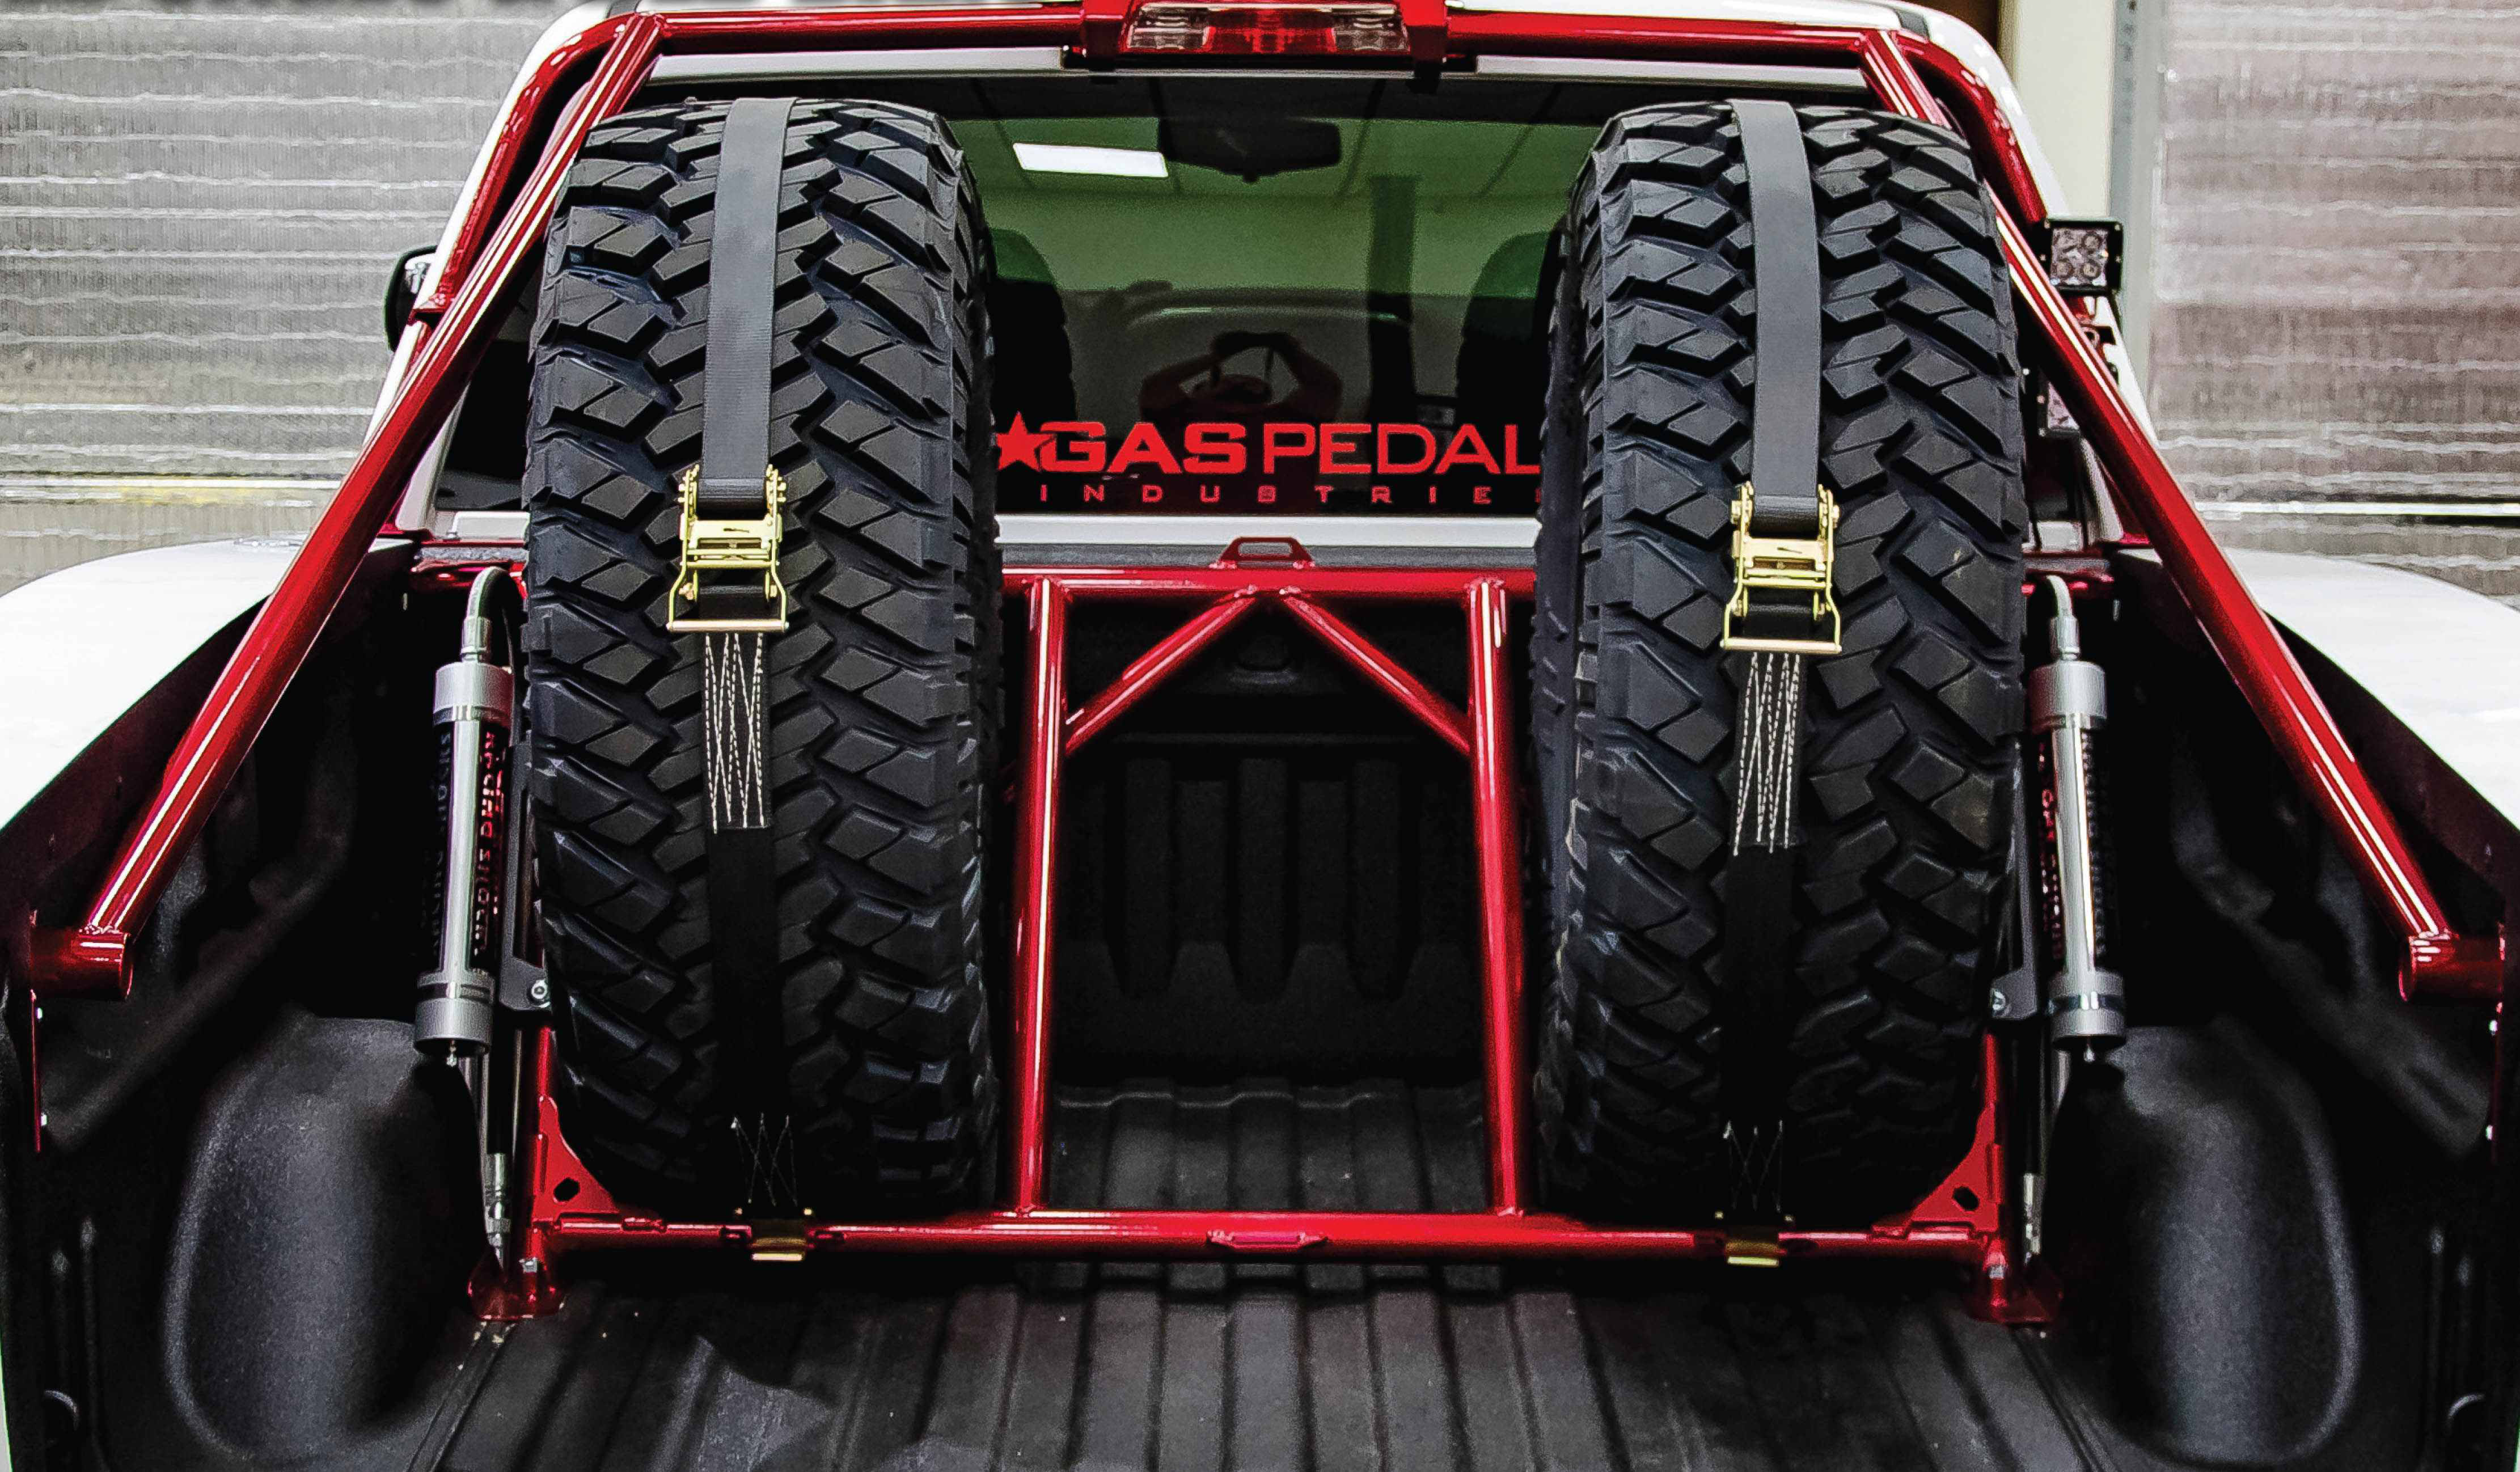 Bed Cages 1 N Fab Unveiled Its New Tire Cage Monday At The 2017 Specialty Equipment Market Association Sema Show In Las Vegas